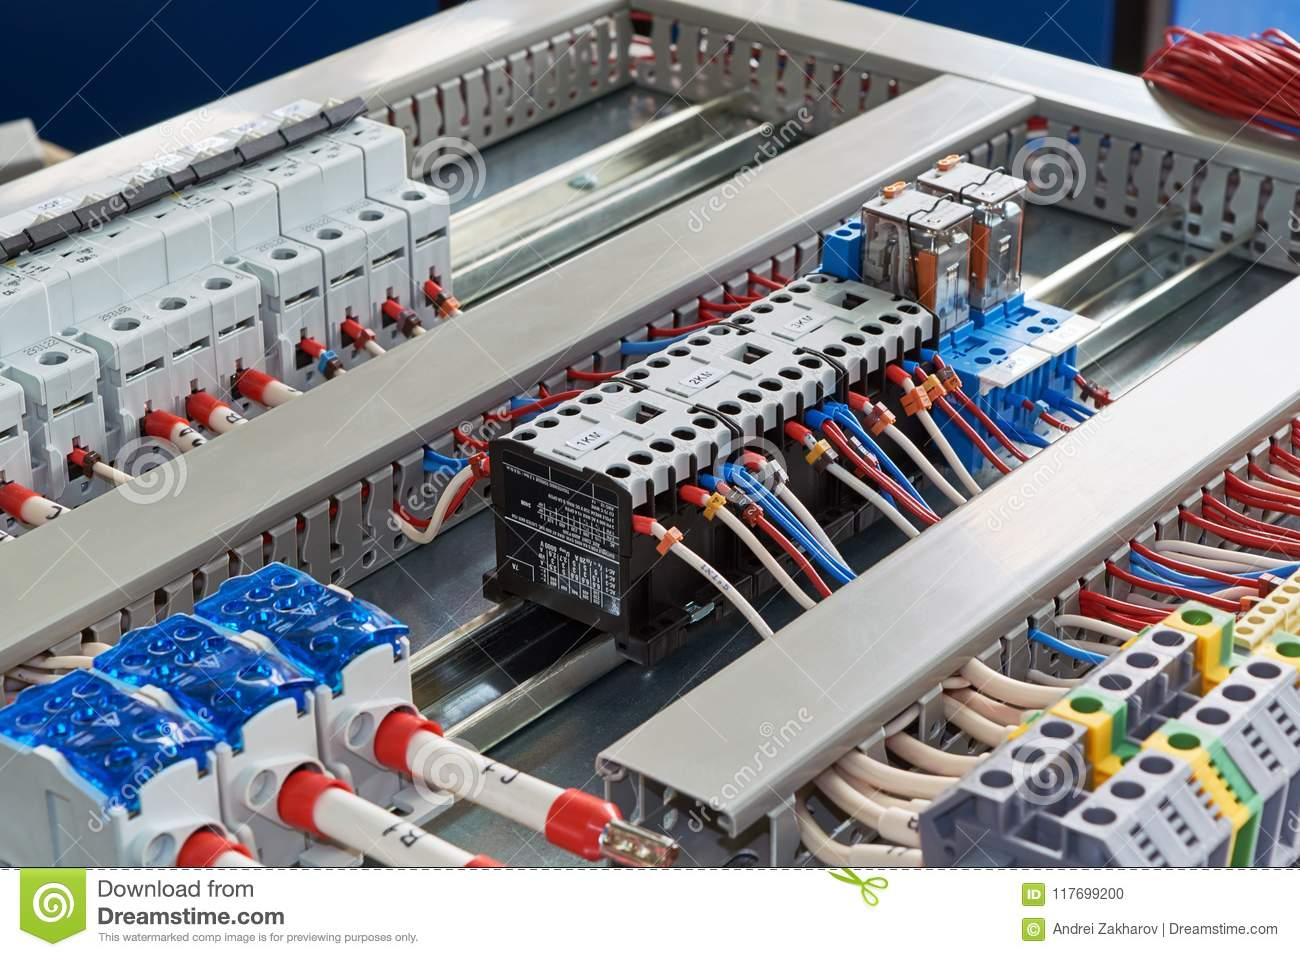 Contactors Relays Circuit Breakers And Terminals In The Electrical Relay Breaker Cabinet